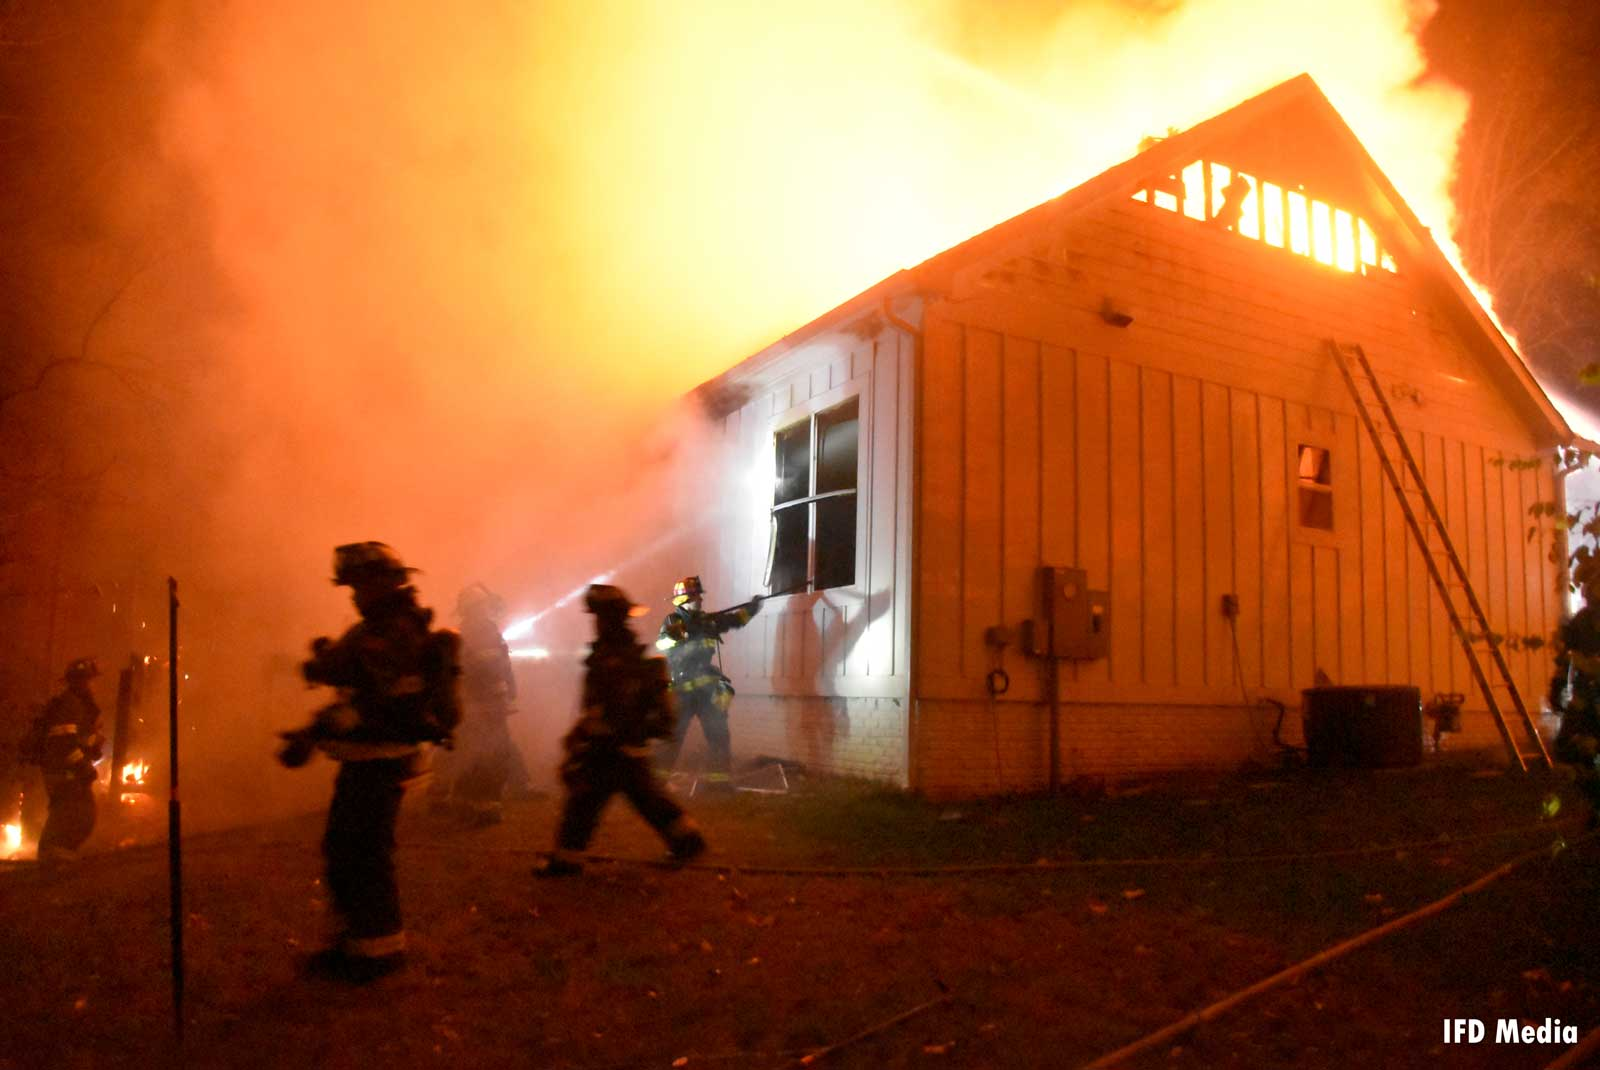 Firefighters at work at flames course through building